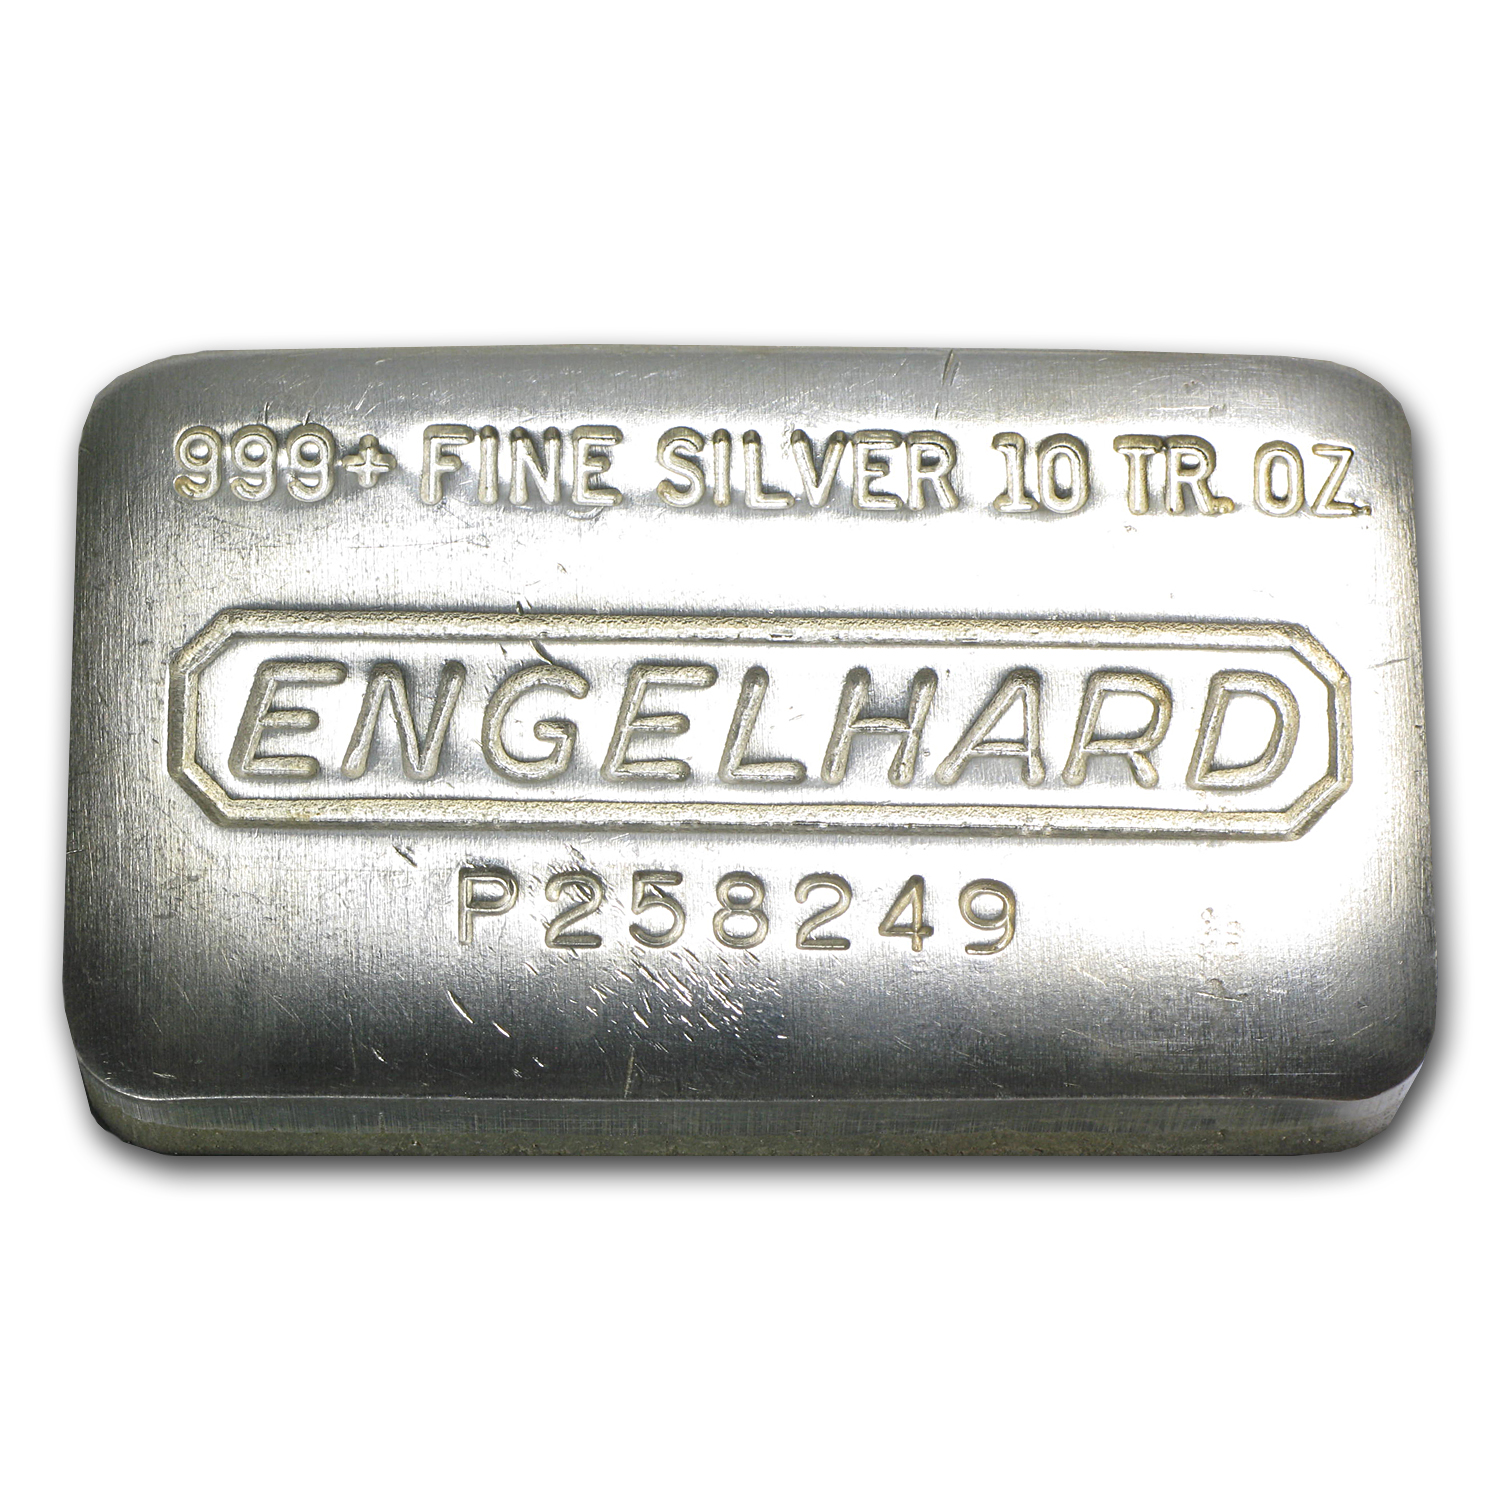 10 oz Silver Bar - Engelhard (Wide, Pressed)